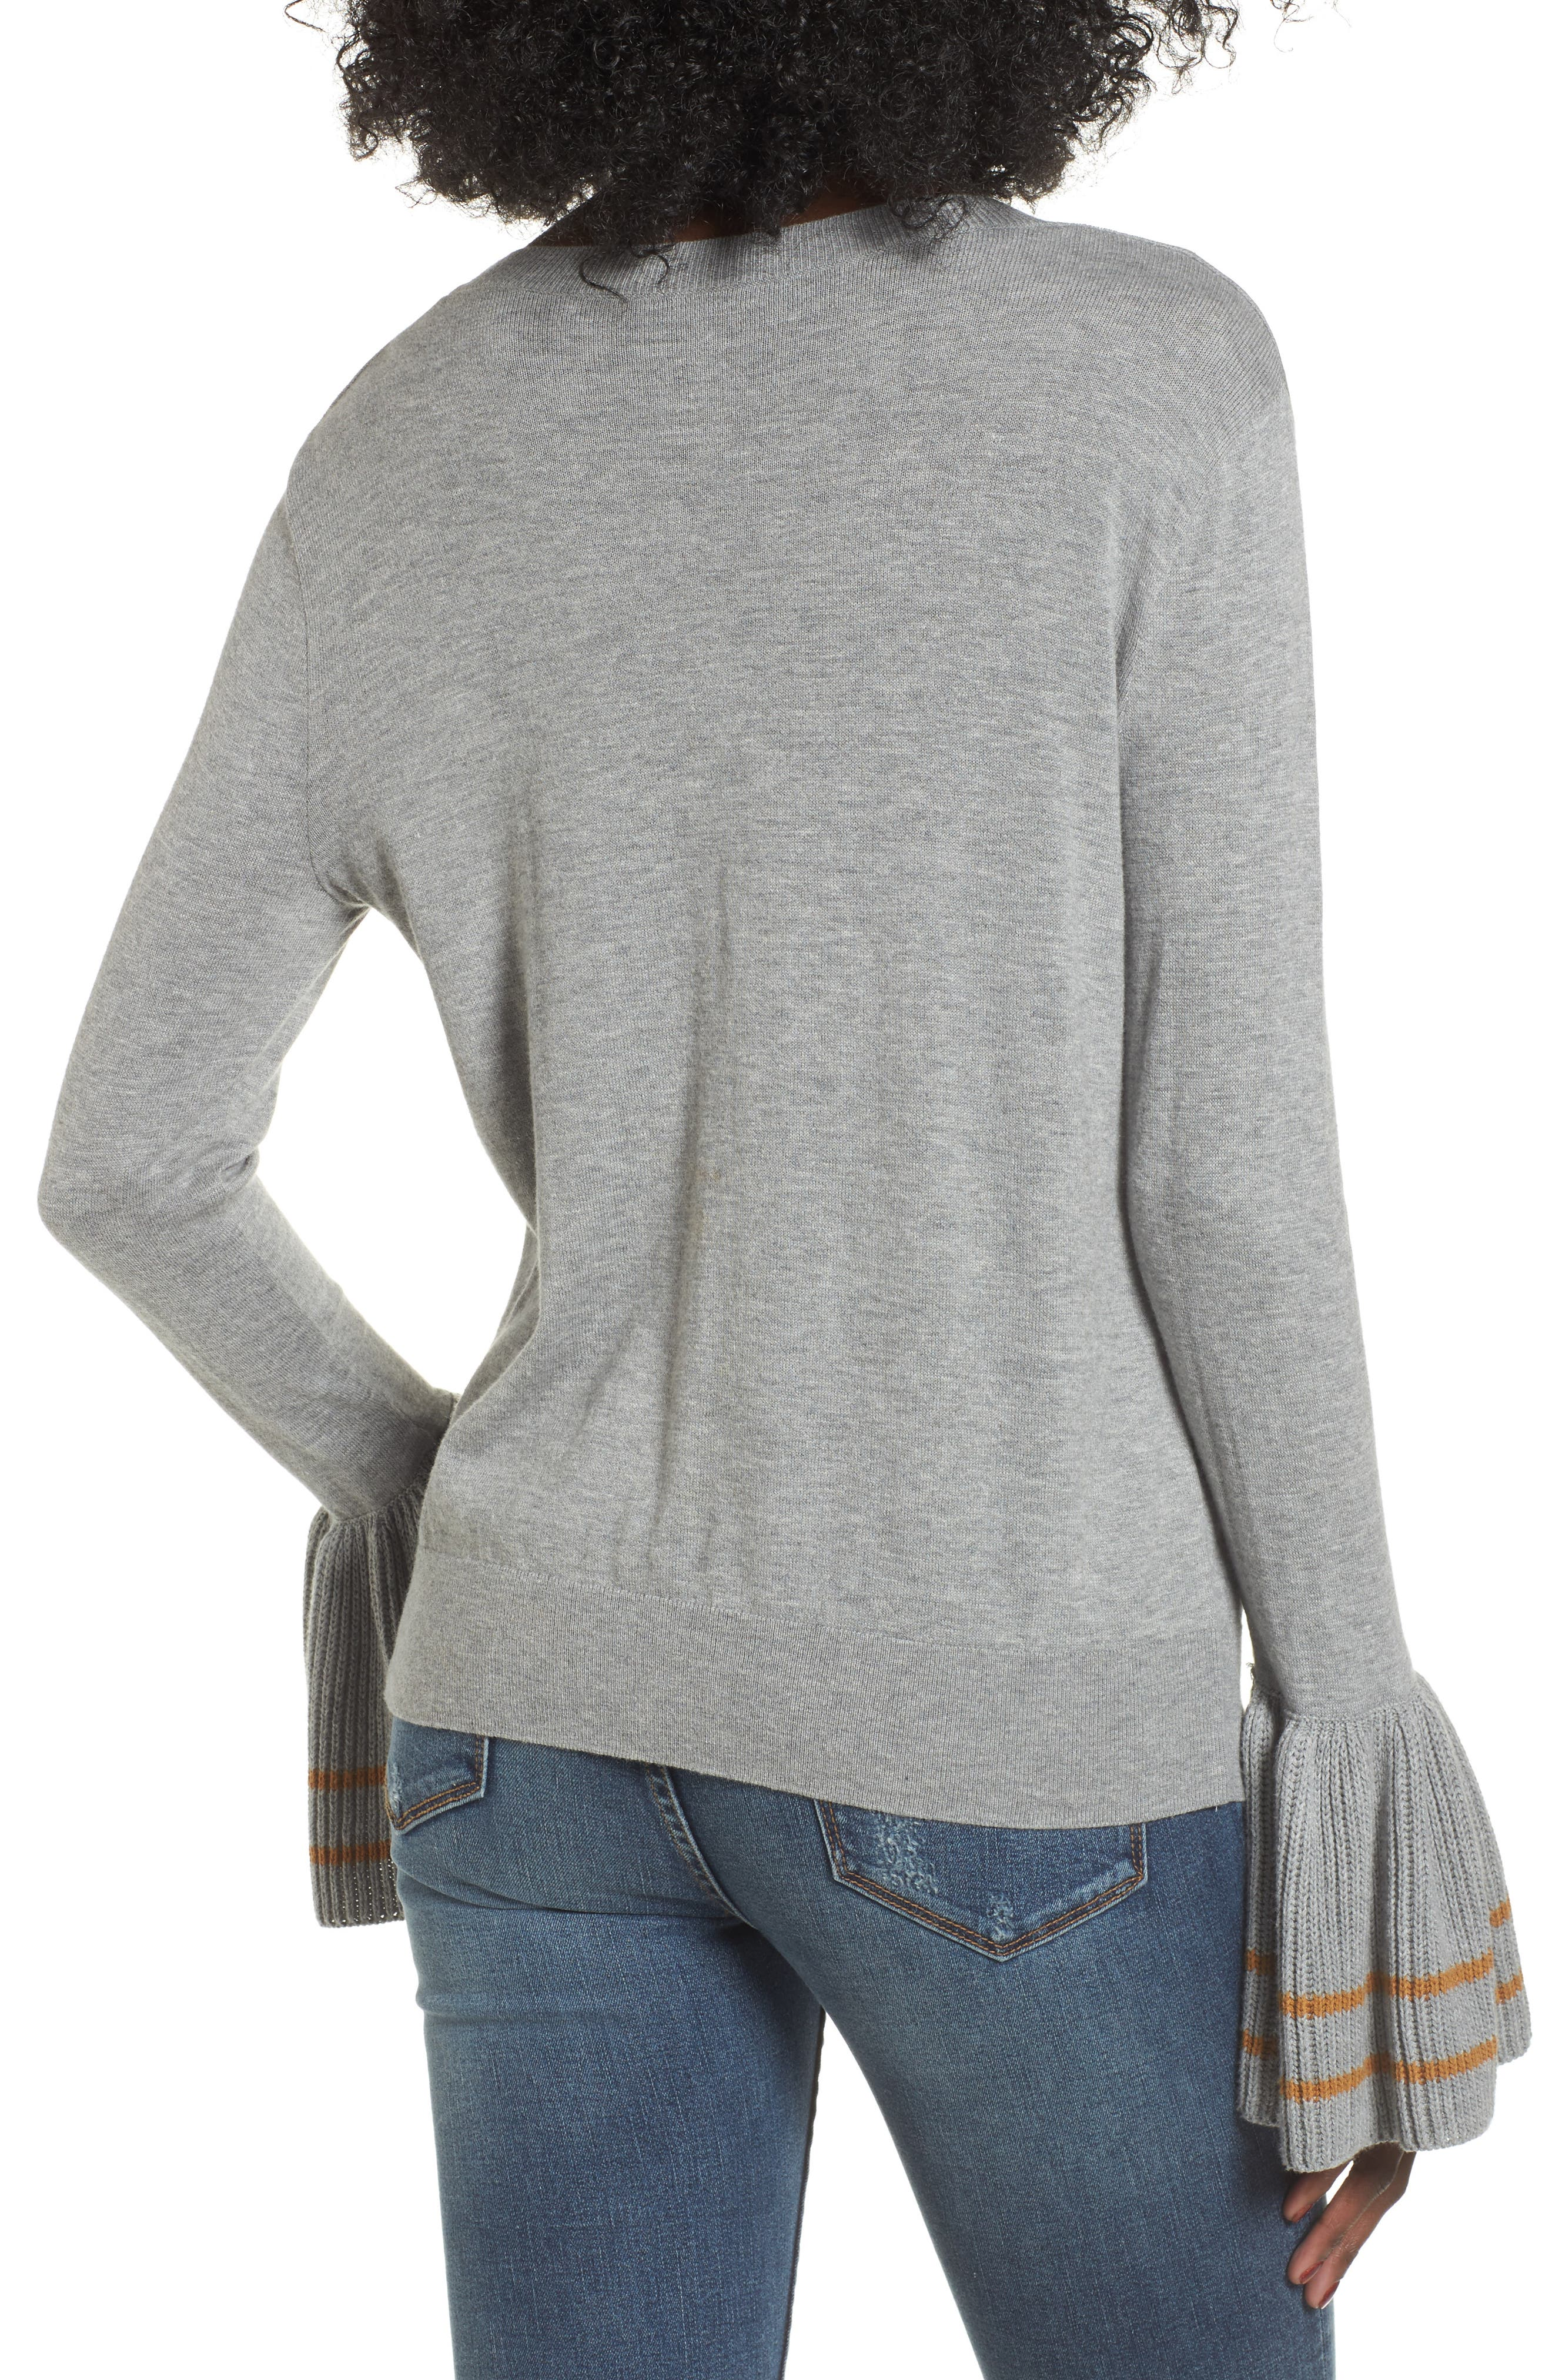 Ruffle Bell Cuff Sweater,                             Alternate thumbnail 2, color,                             030